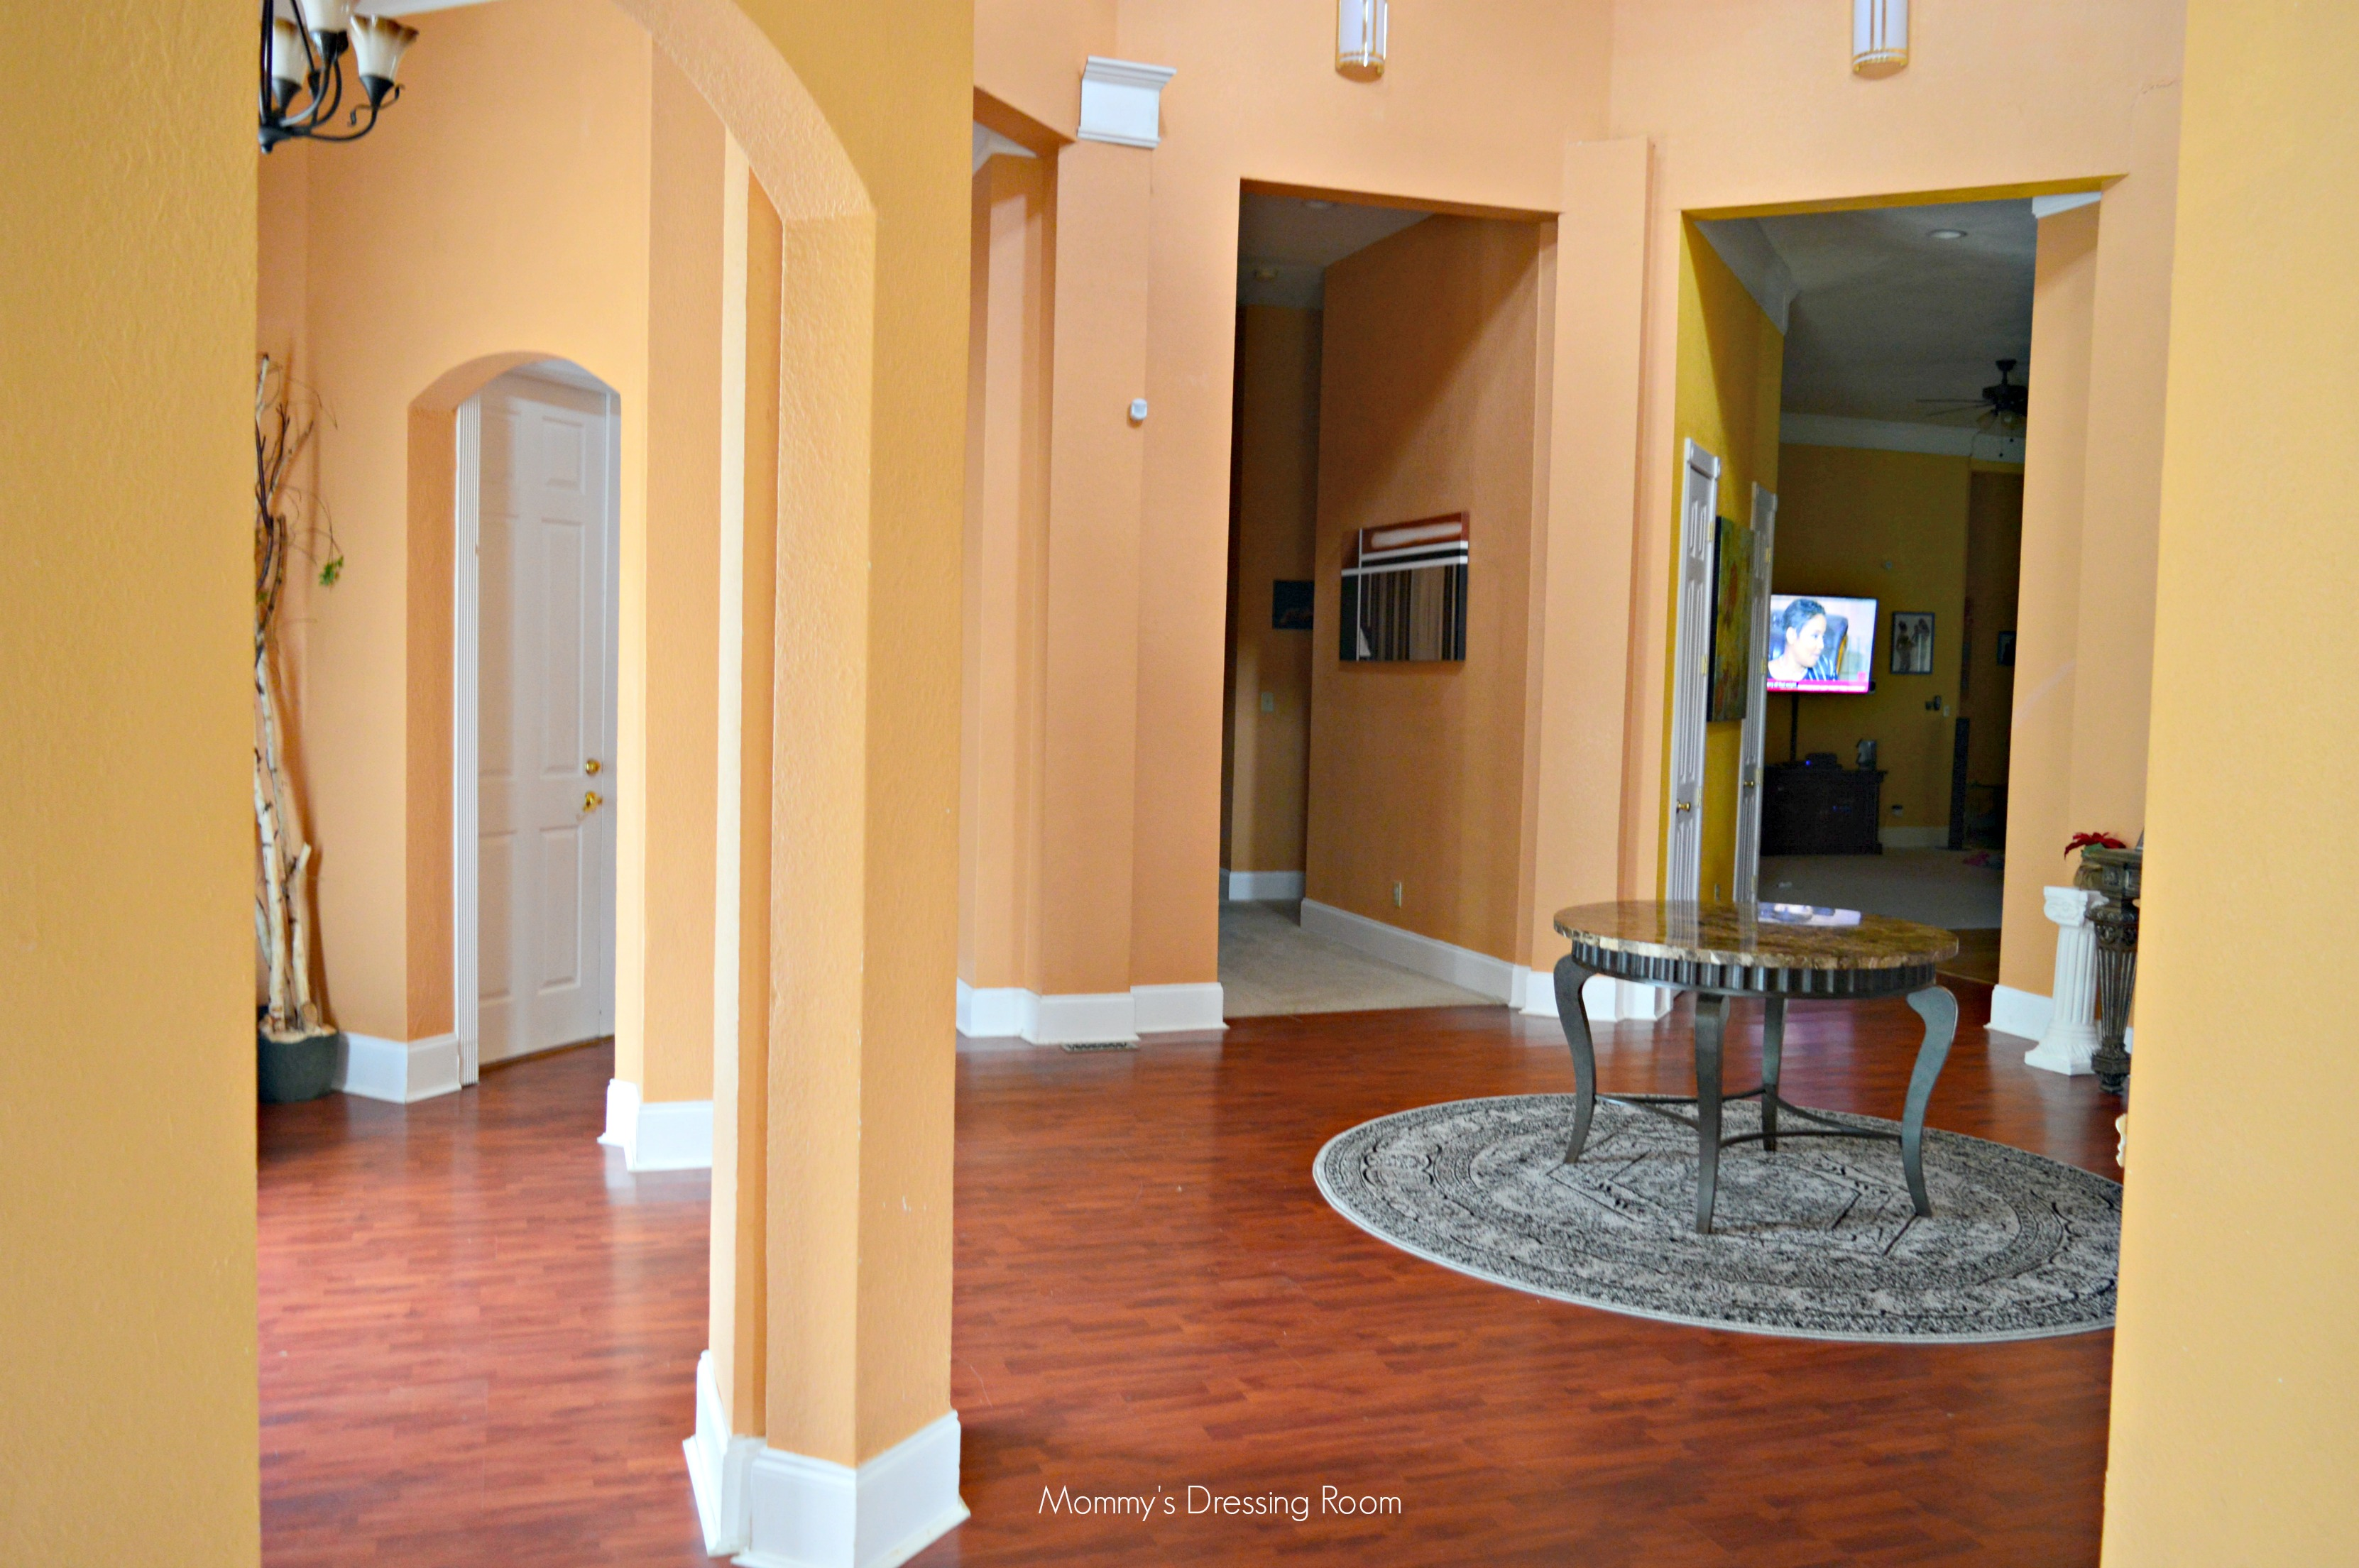 foyer-interior design-diy-renovation-decor-home renovation-hgtv